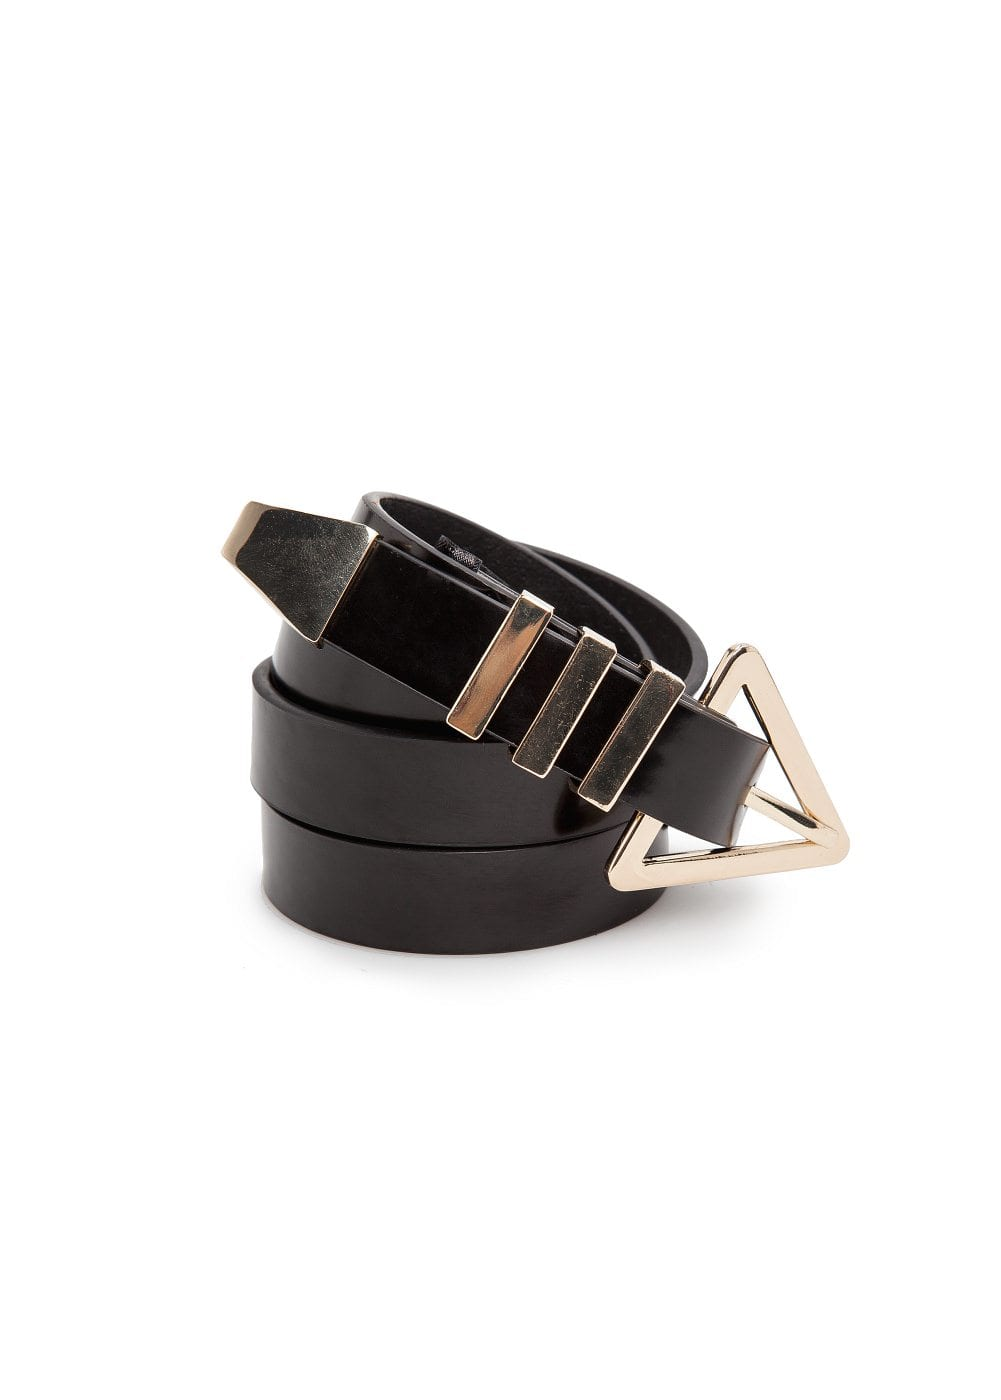 Triangular buckle belt